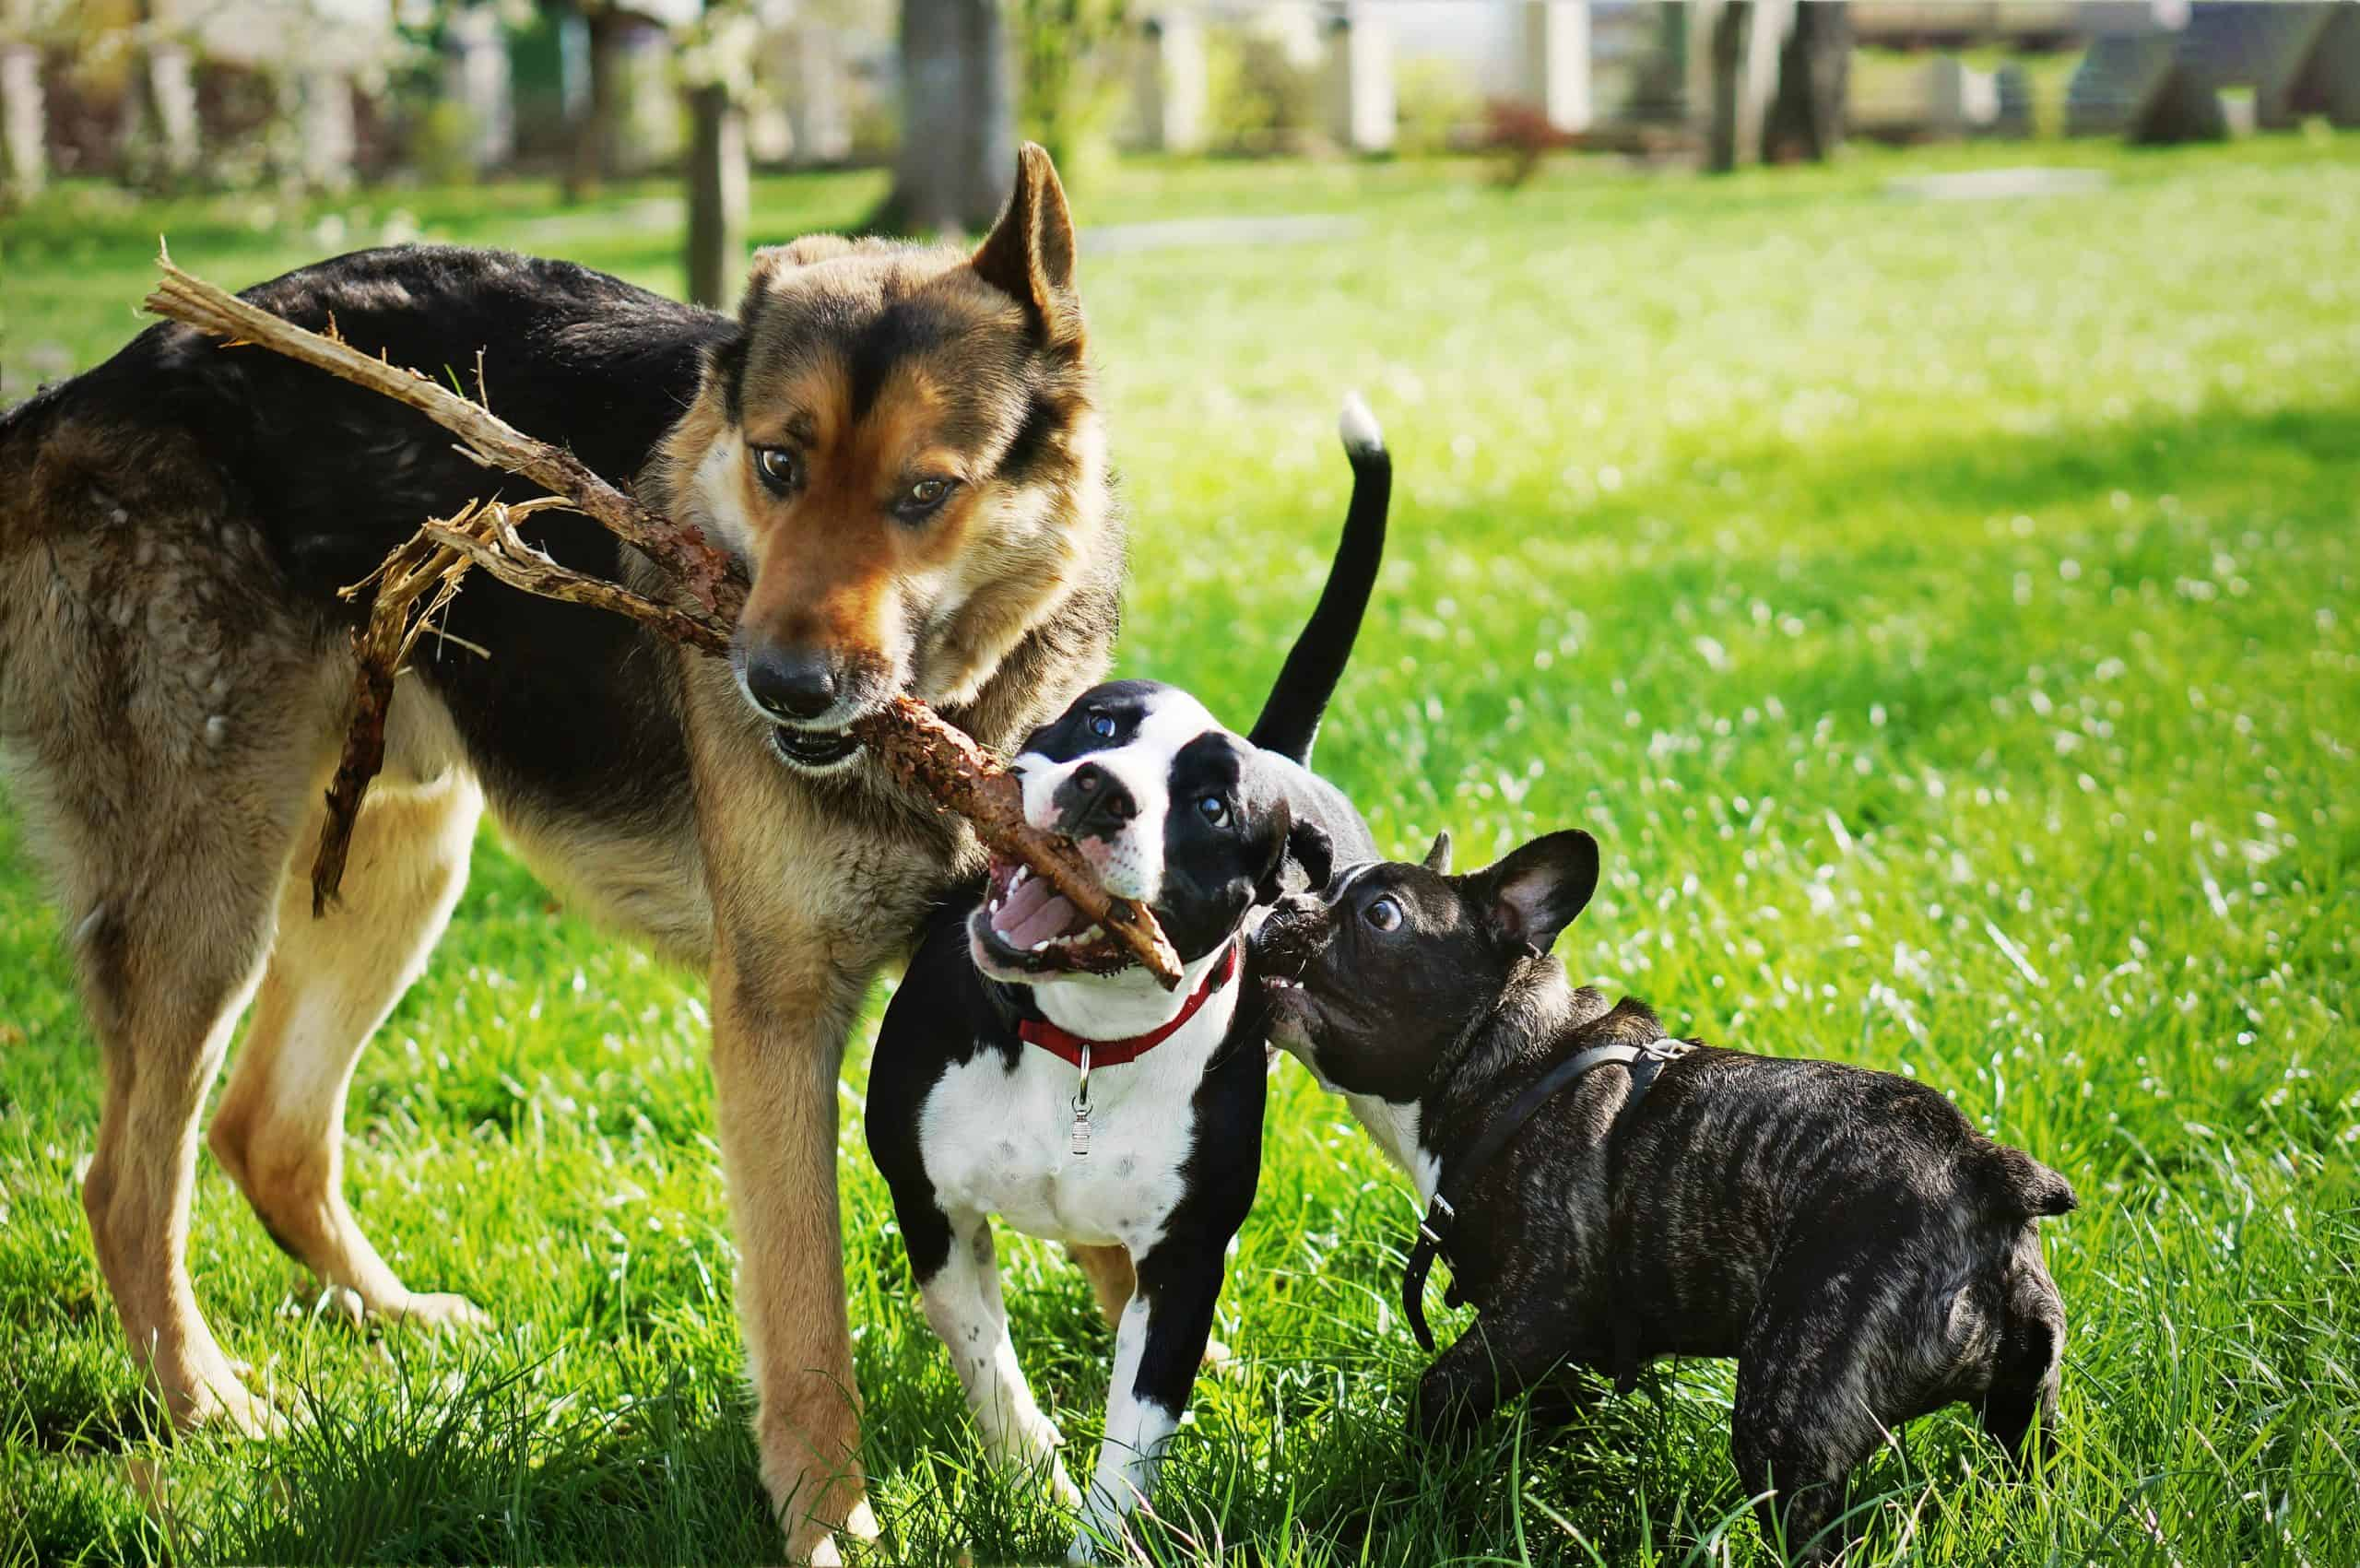 German shepherd, pitbull mix and french bulldog play with a stick. Make sure your dog is socialized and plays well with other dogs before heading to a dog park.